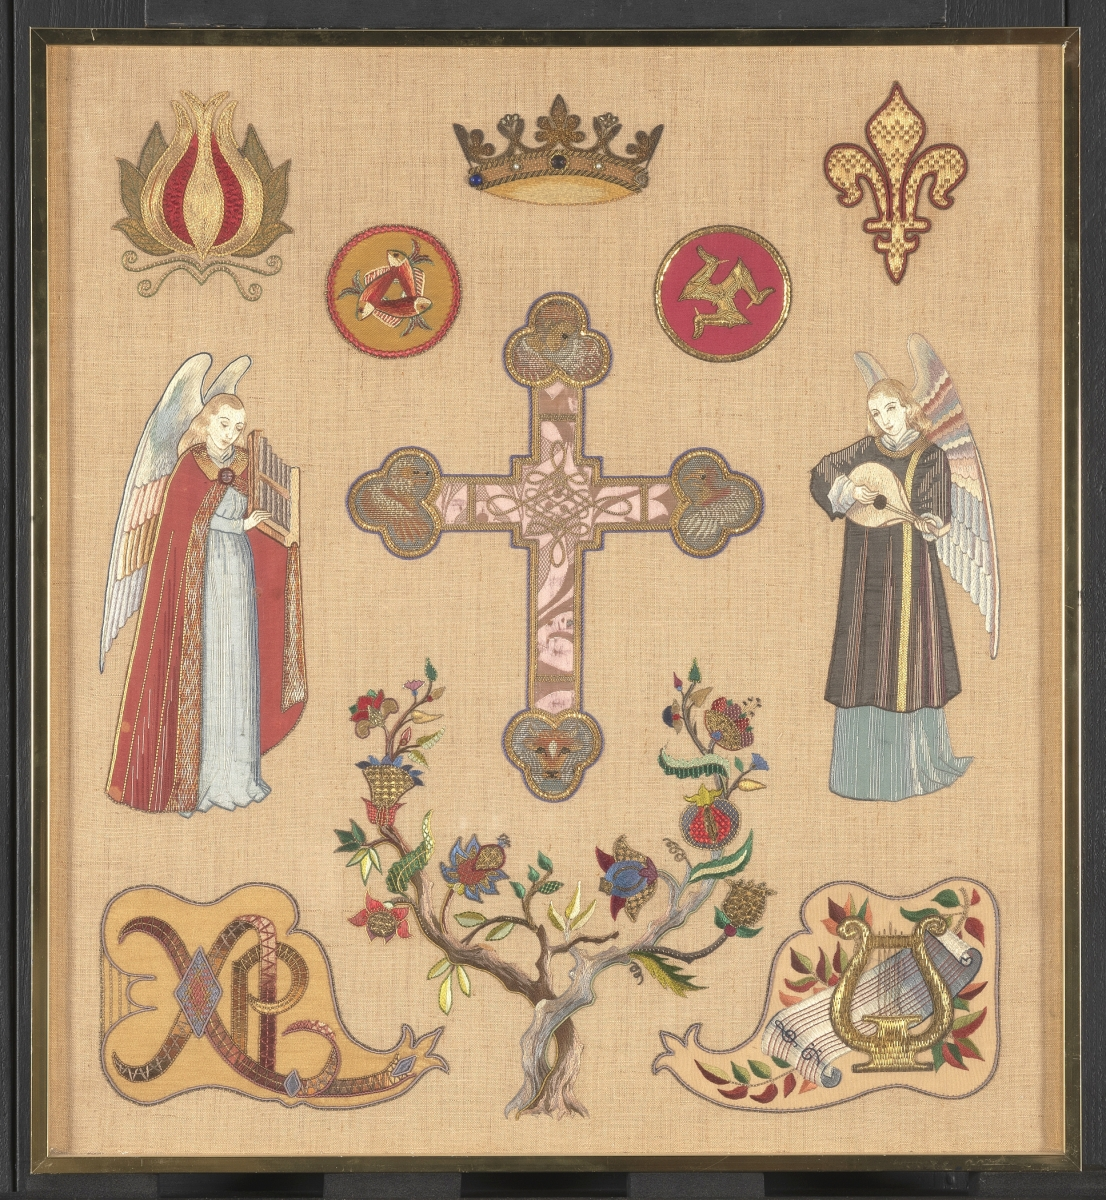 Working toward her teaching credentials, Wilson designed much of this silk and goldwork sampler herself, using prototypes she saw and sketched at the Victoria and Albert Museum. Winterthur Museum, Gift of the Family of Erica Wilson, 2015.0047.003.